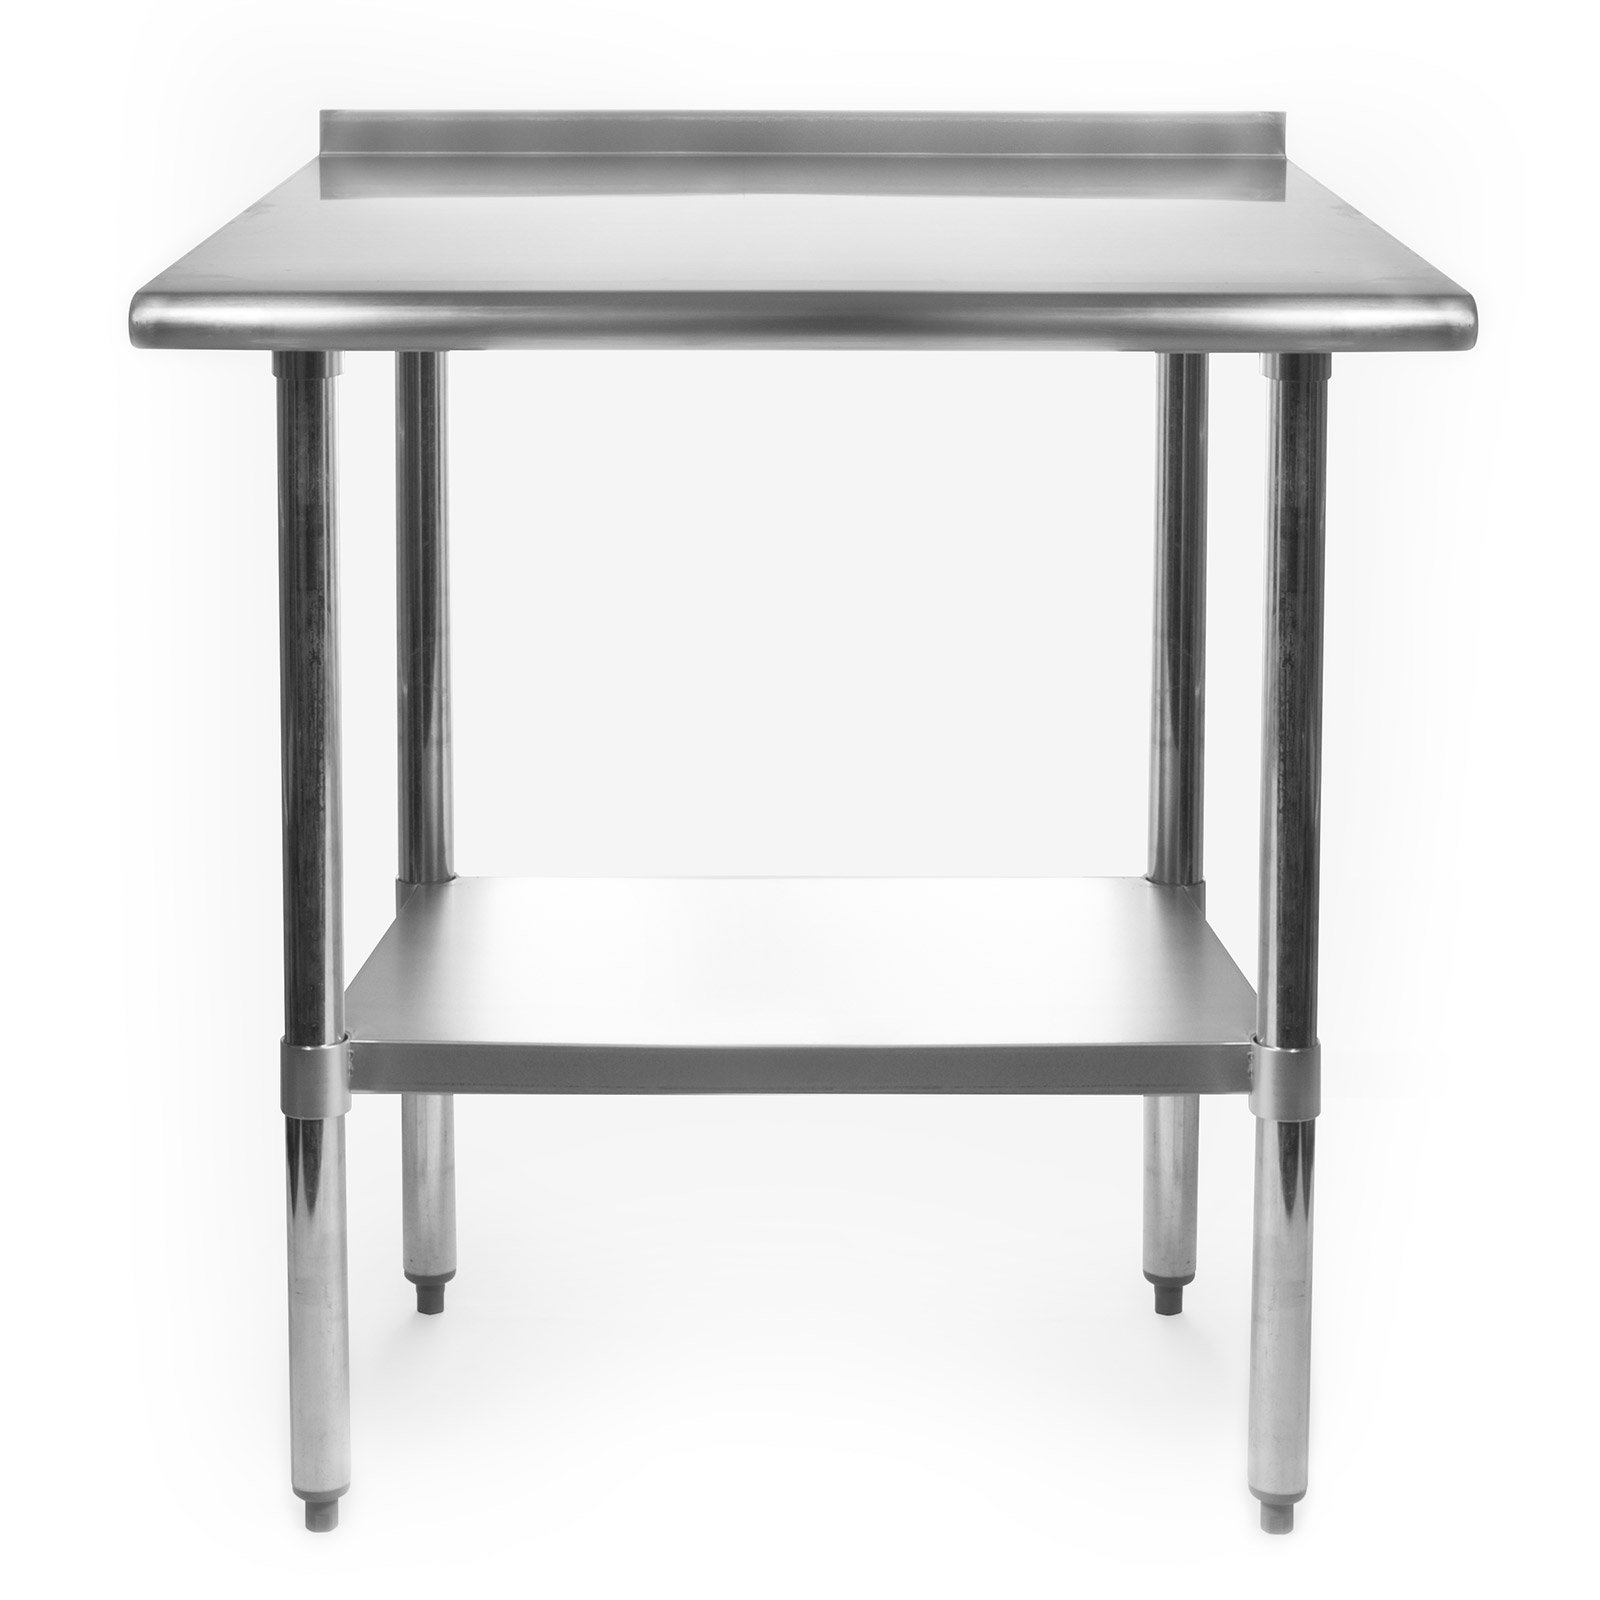 Gridmann Stainless Steel Commercial Kitchen Prep & Work Table w/ Backsplash - 30'' x 24'' by Gridmann (Image #2)